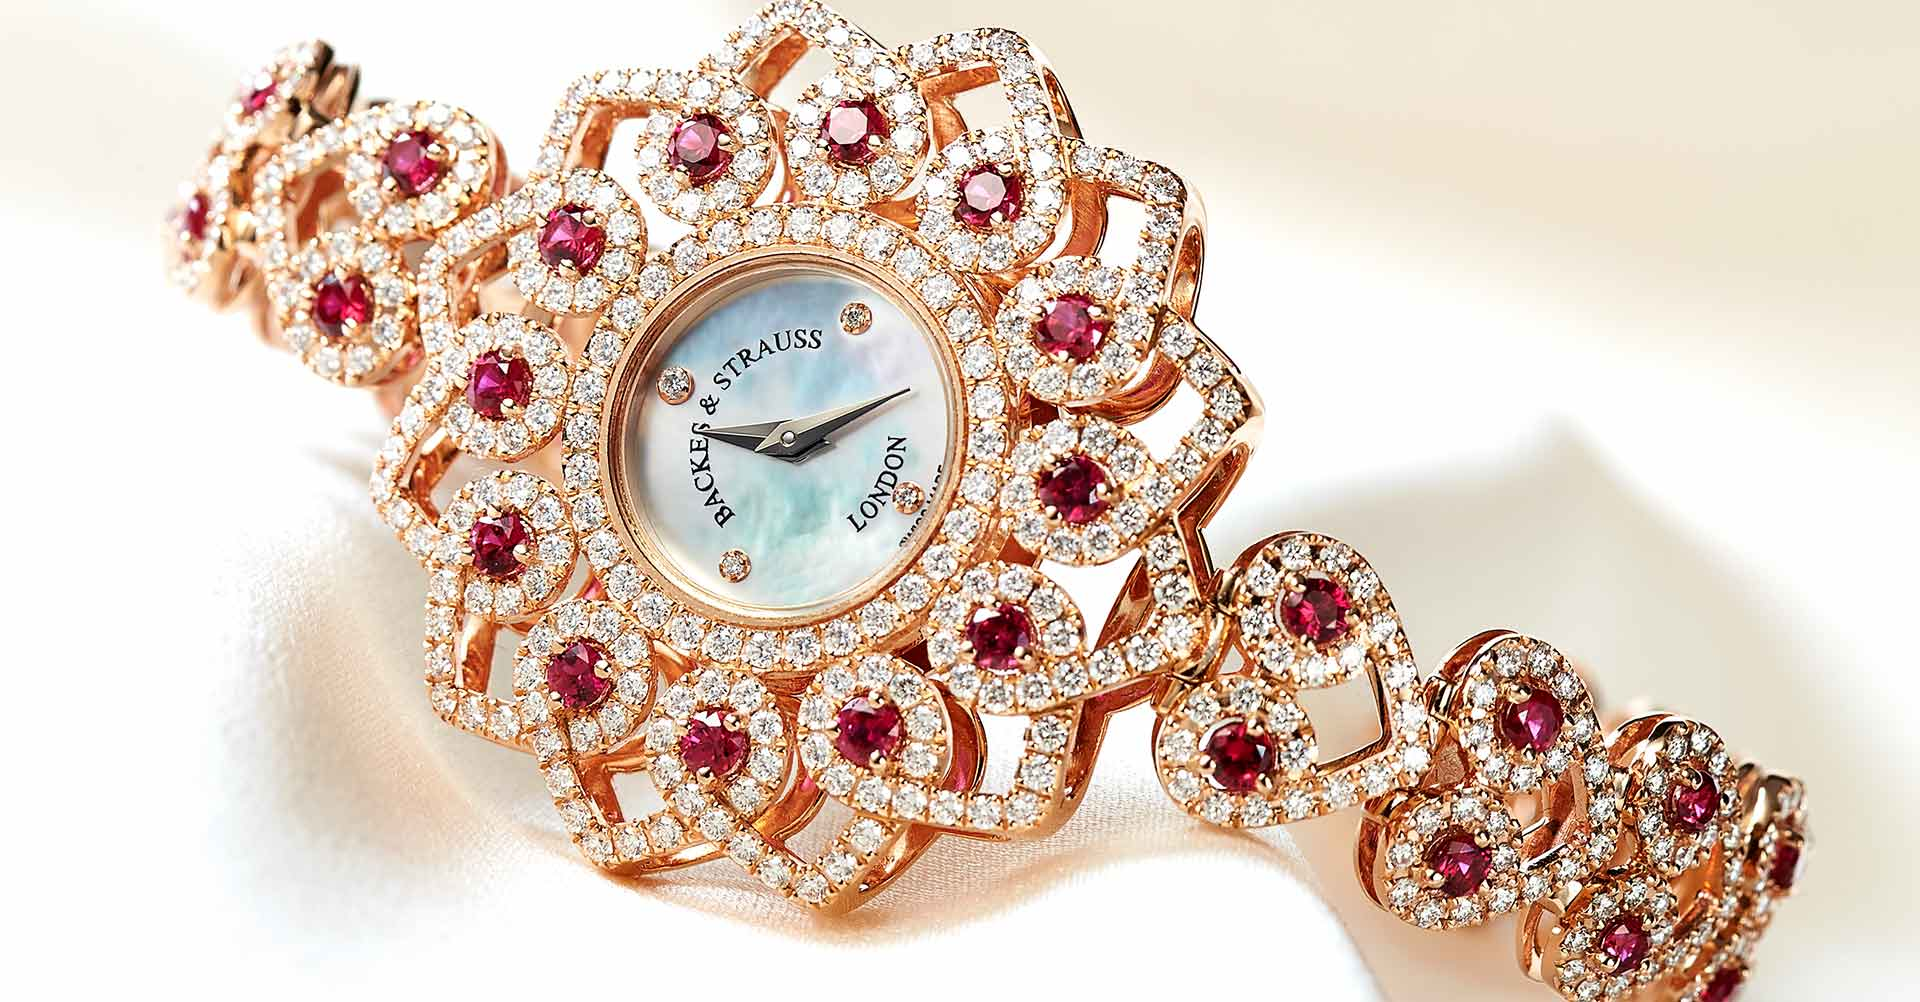 Victoria Princess red rose watch for her